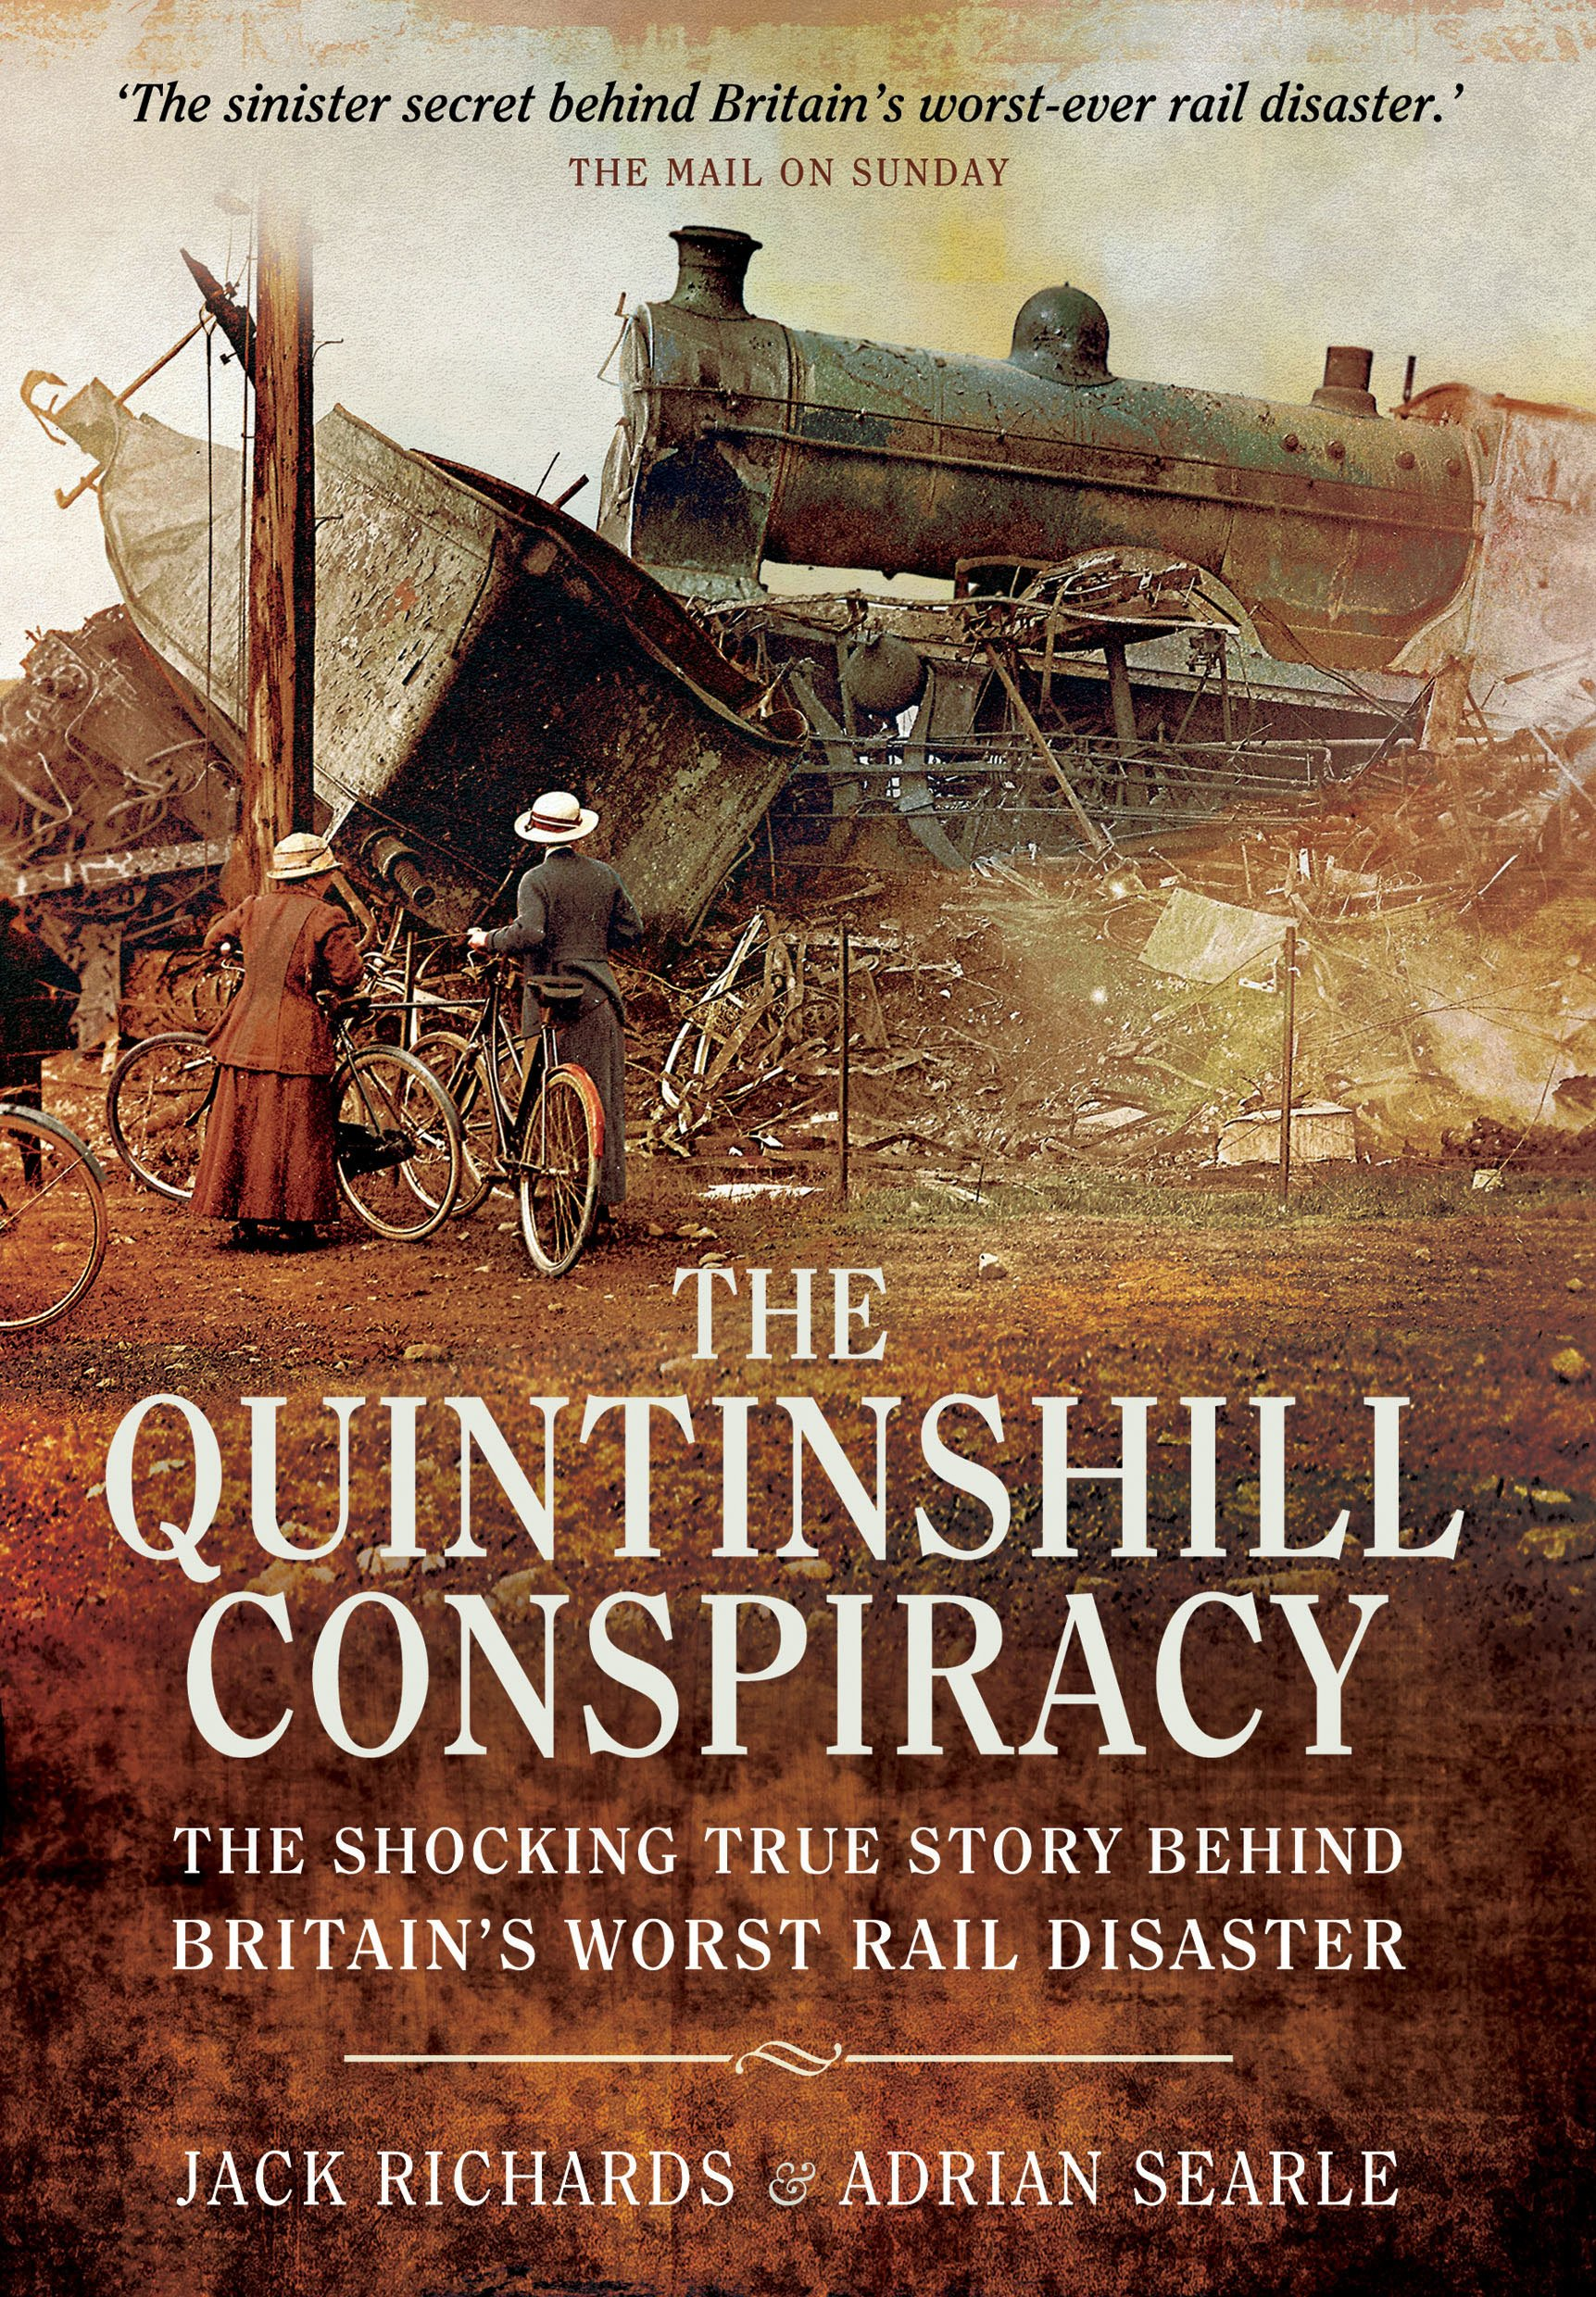 Quintinshill Conspiracy  The Shocking True Story Behind Britain's Worst Rail Disaster